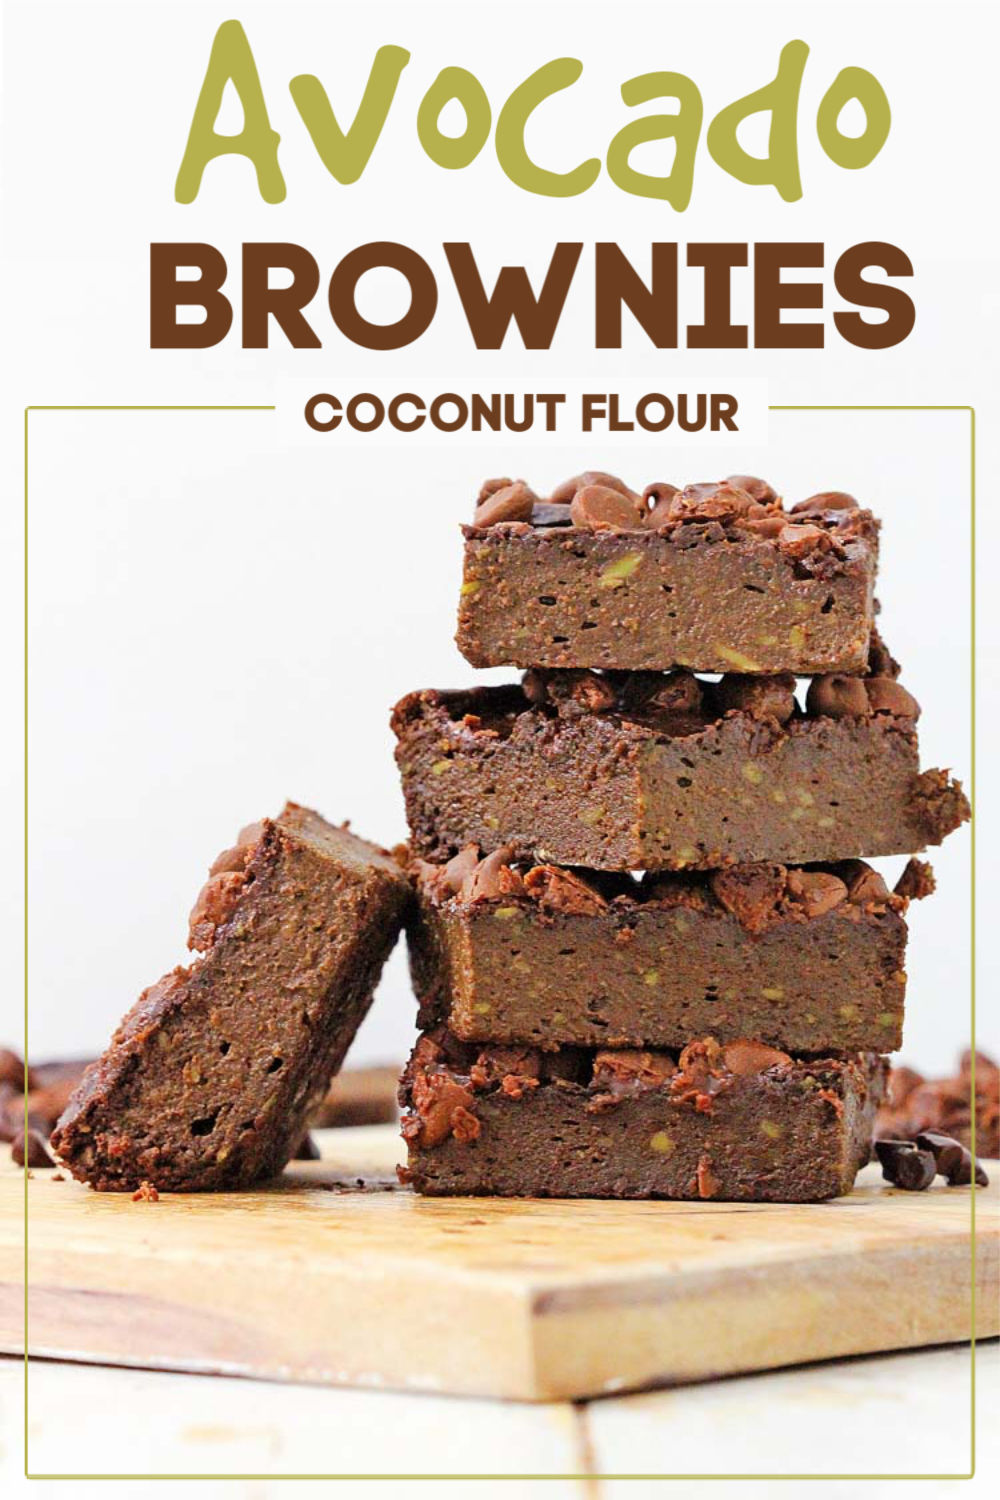 These fudgy avocado brownies are made with coconut flour and are gluten free. But don't tell your kids that! These are out of this world amazing (and you can't taste the avocado). Serve these guilt free! #brownies #avocado #easybaking